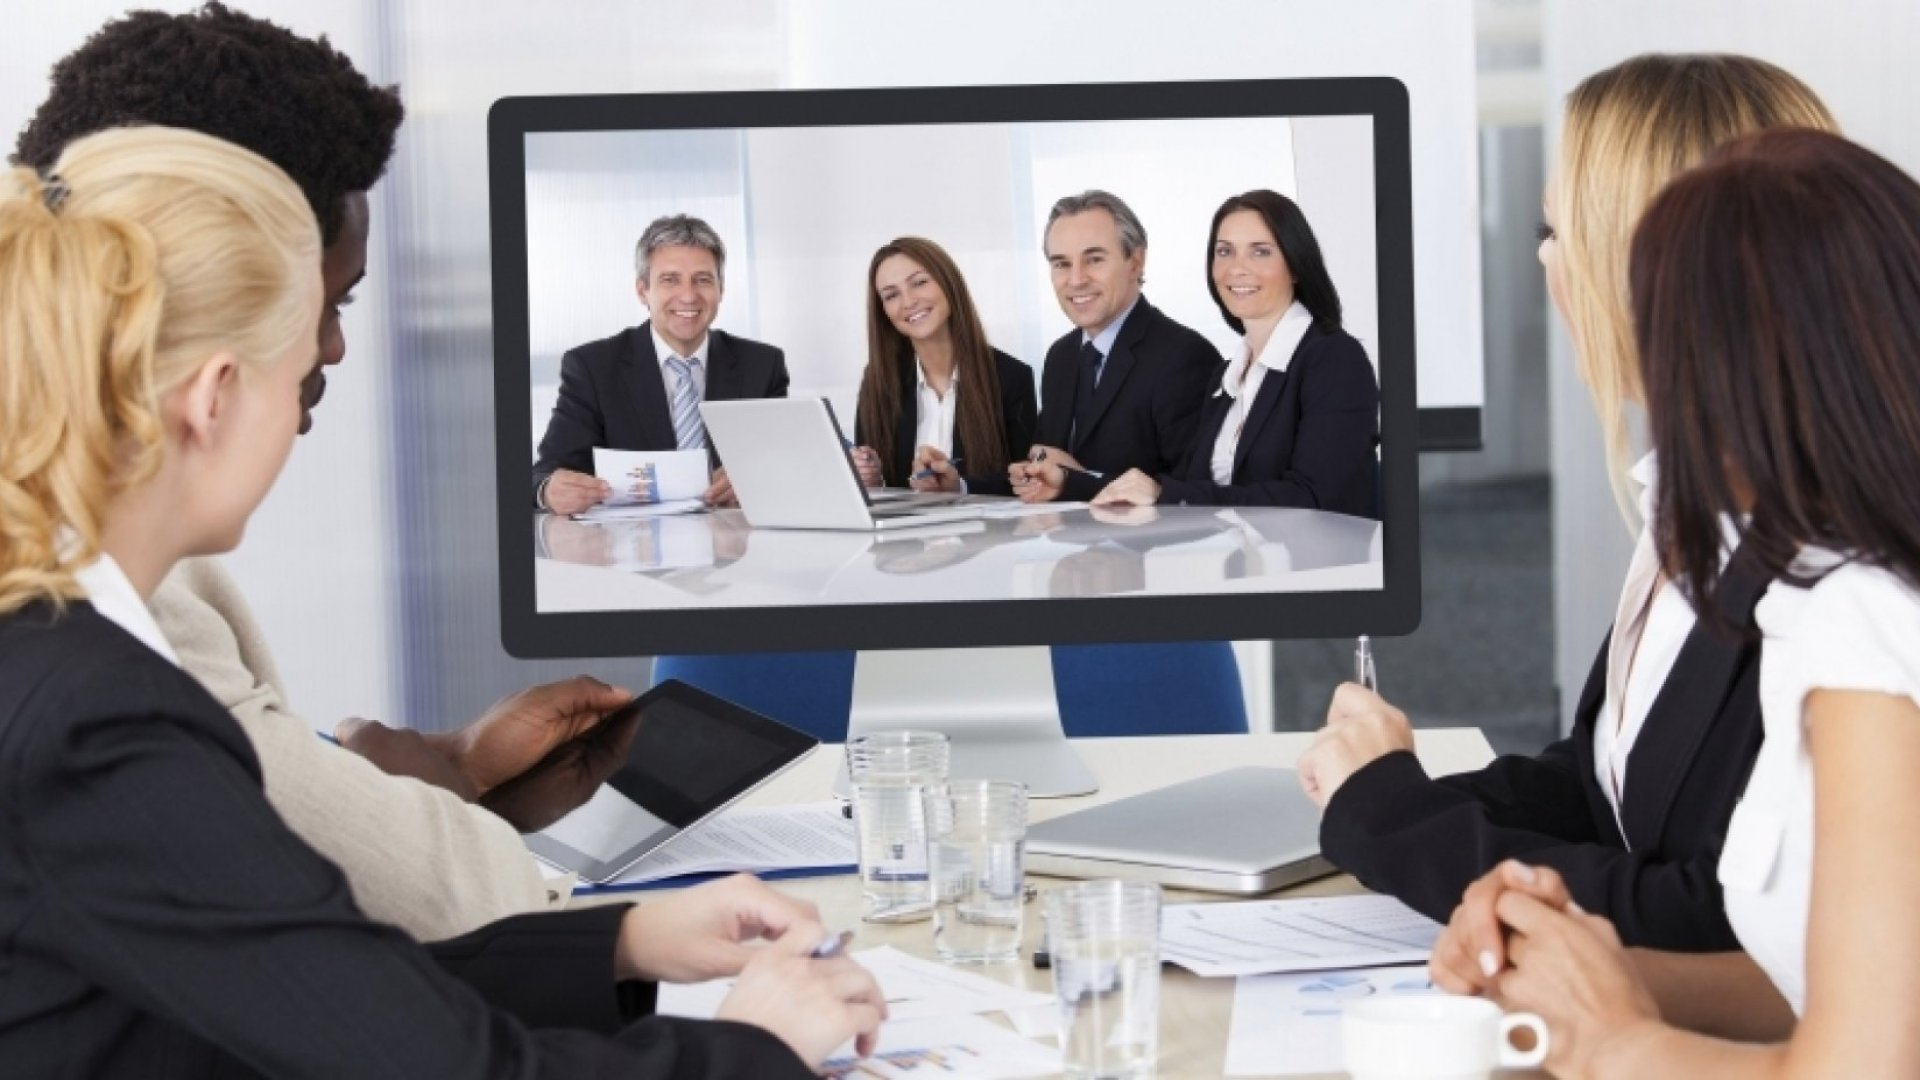 5 Ways to Benefit From an Online Conference